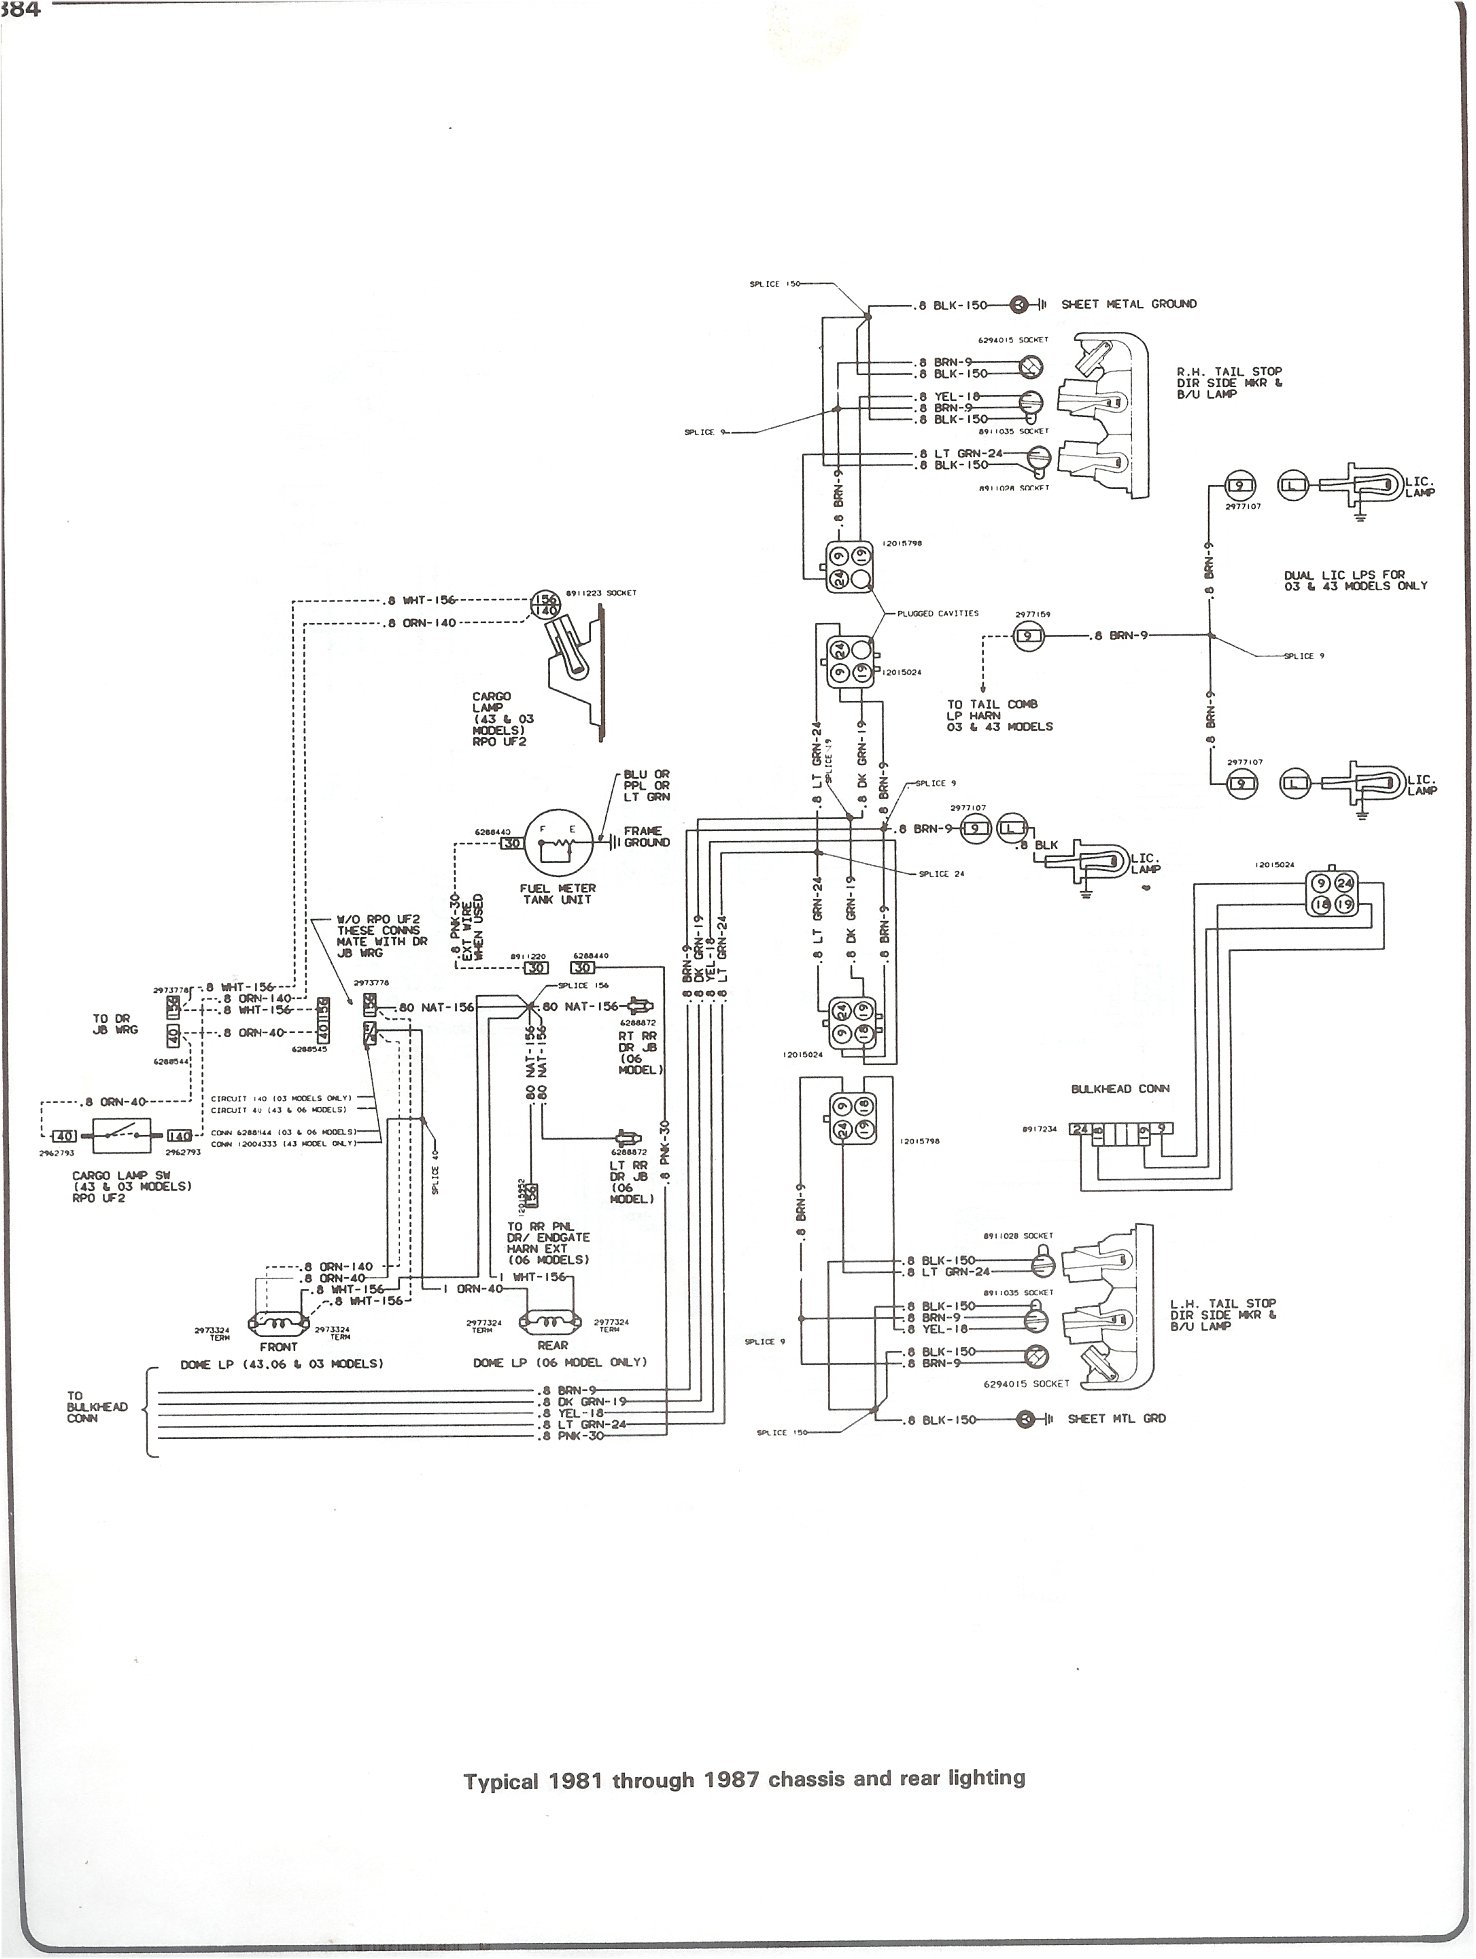 81 87_chass_rr_light wiring diagram for chevy c10 1981 to 1987 readingrat net 1987 chevy wiring diagram at soozxer.org